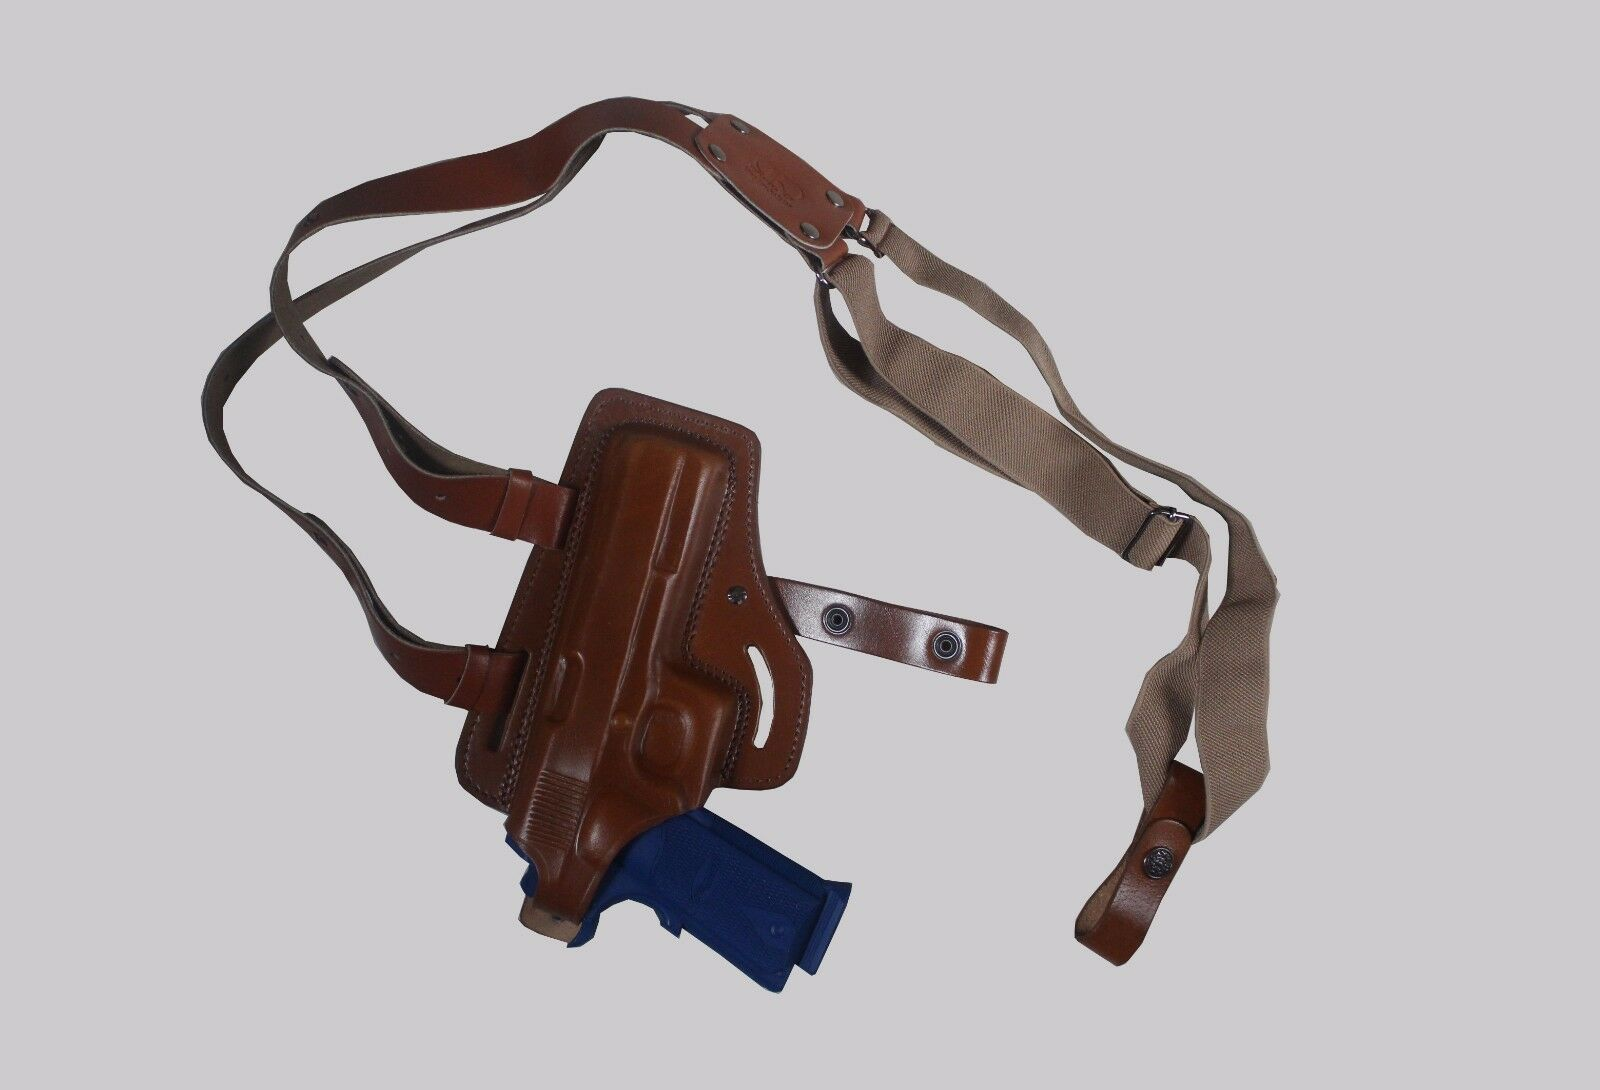 KHS0343 Horizontal Shoulder & Belt Holster Thumb Break Colt 1911 Handmade (2in1)